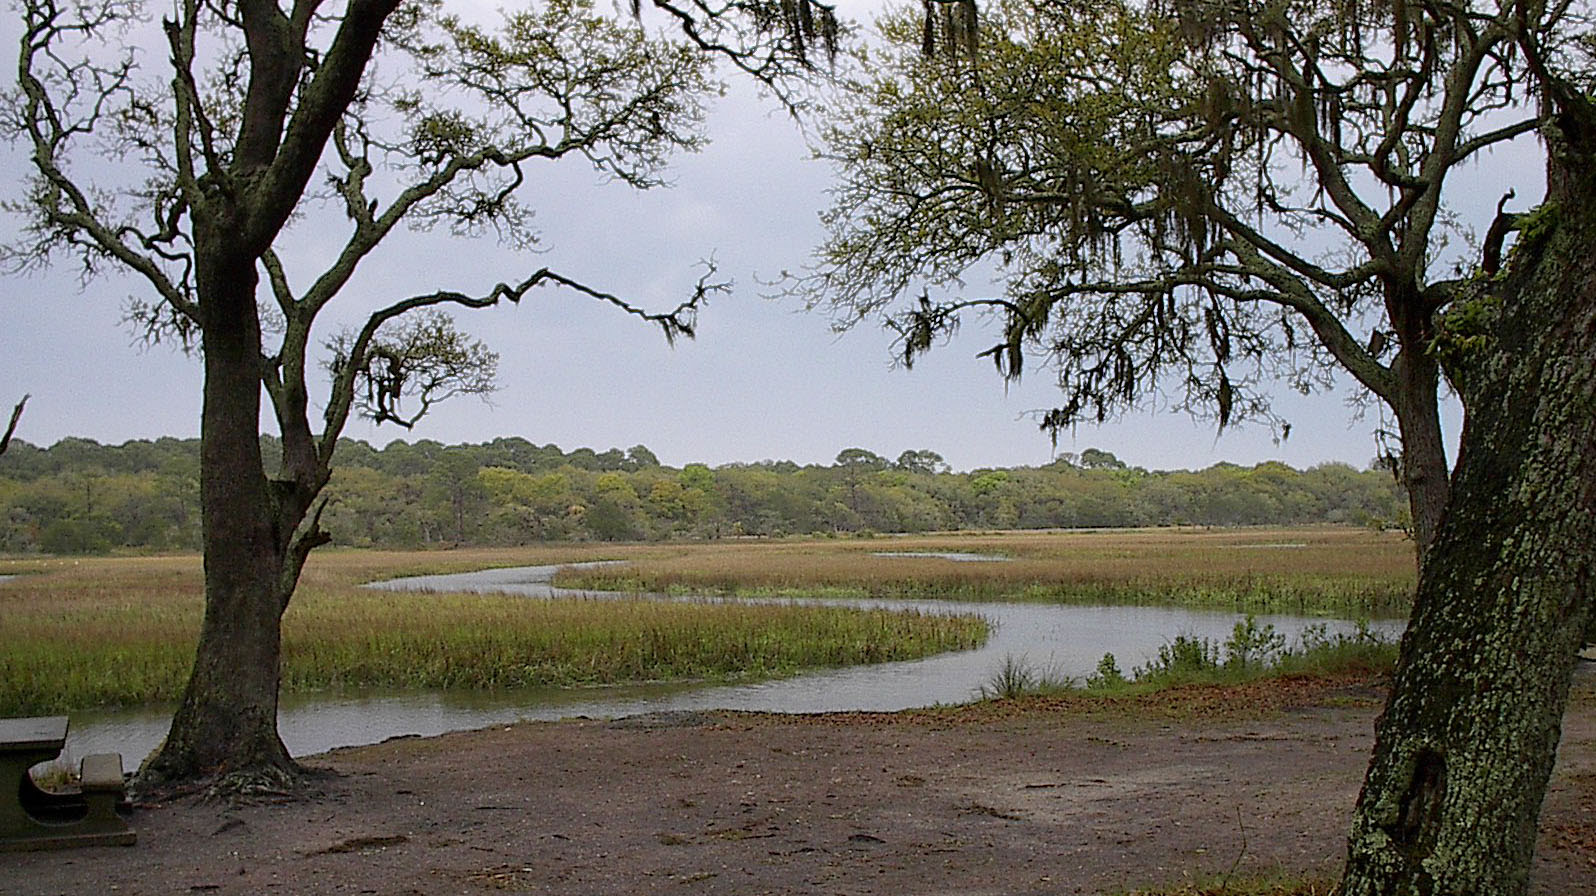 http://upload.wikimedia.org/wikipedia/commons/d/df/JekyllIslandMarsh.jpg